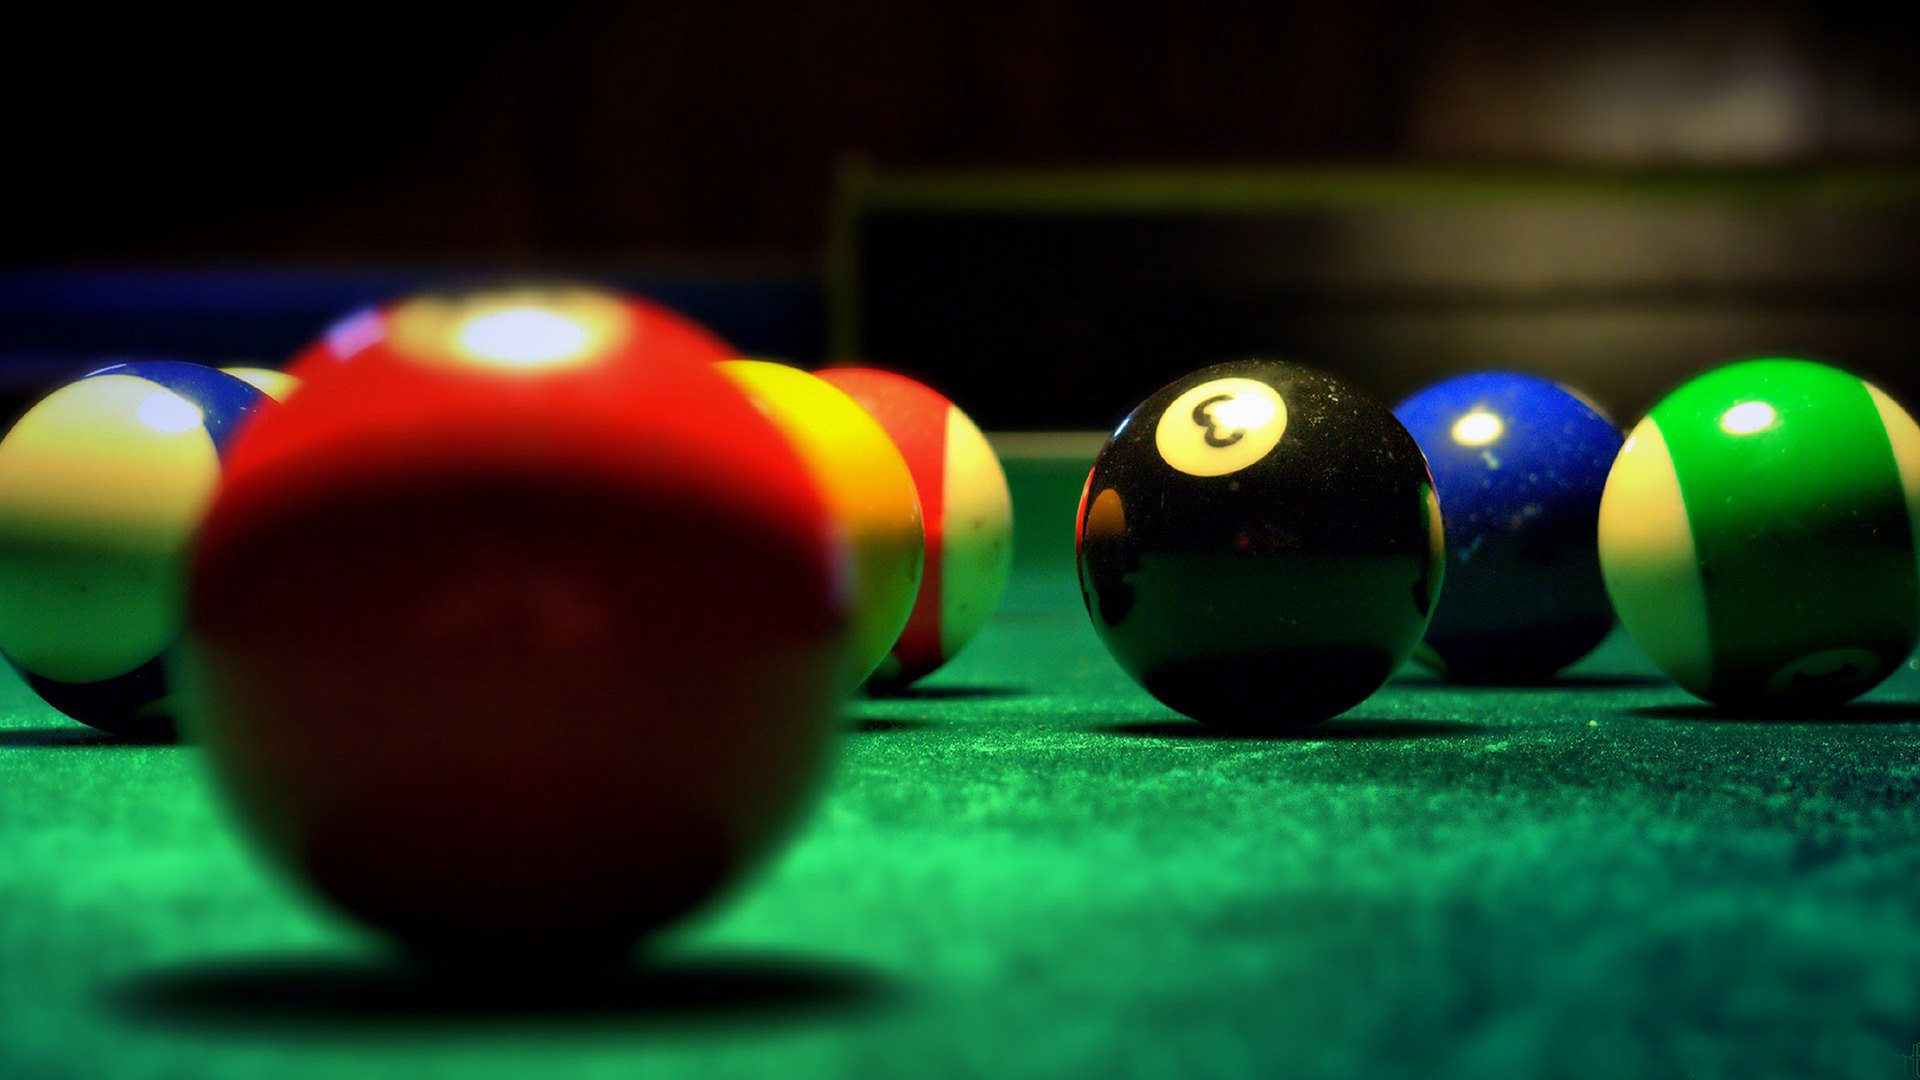 snooker balls wallpaper background